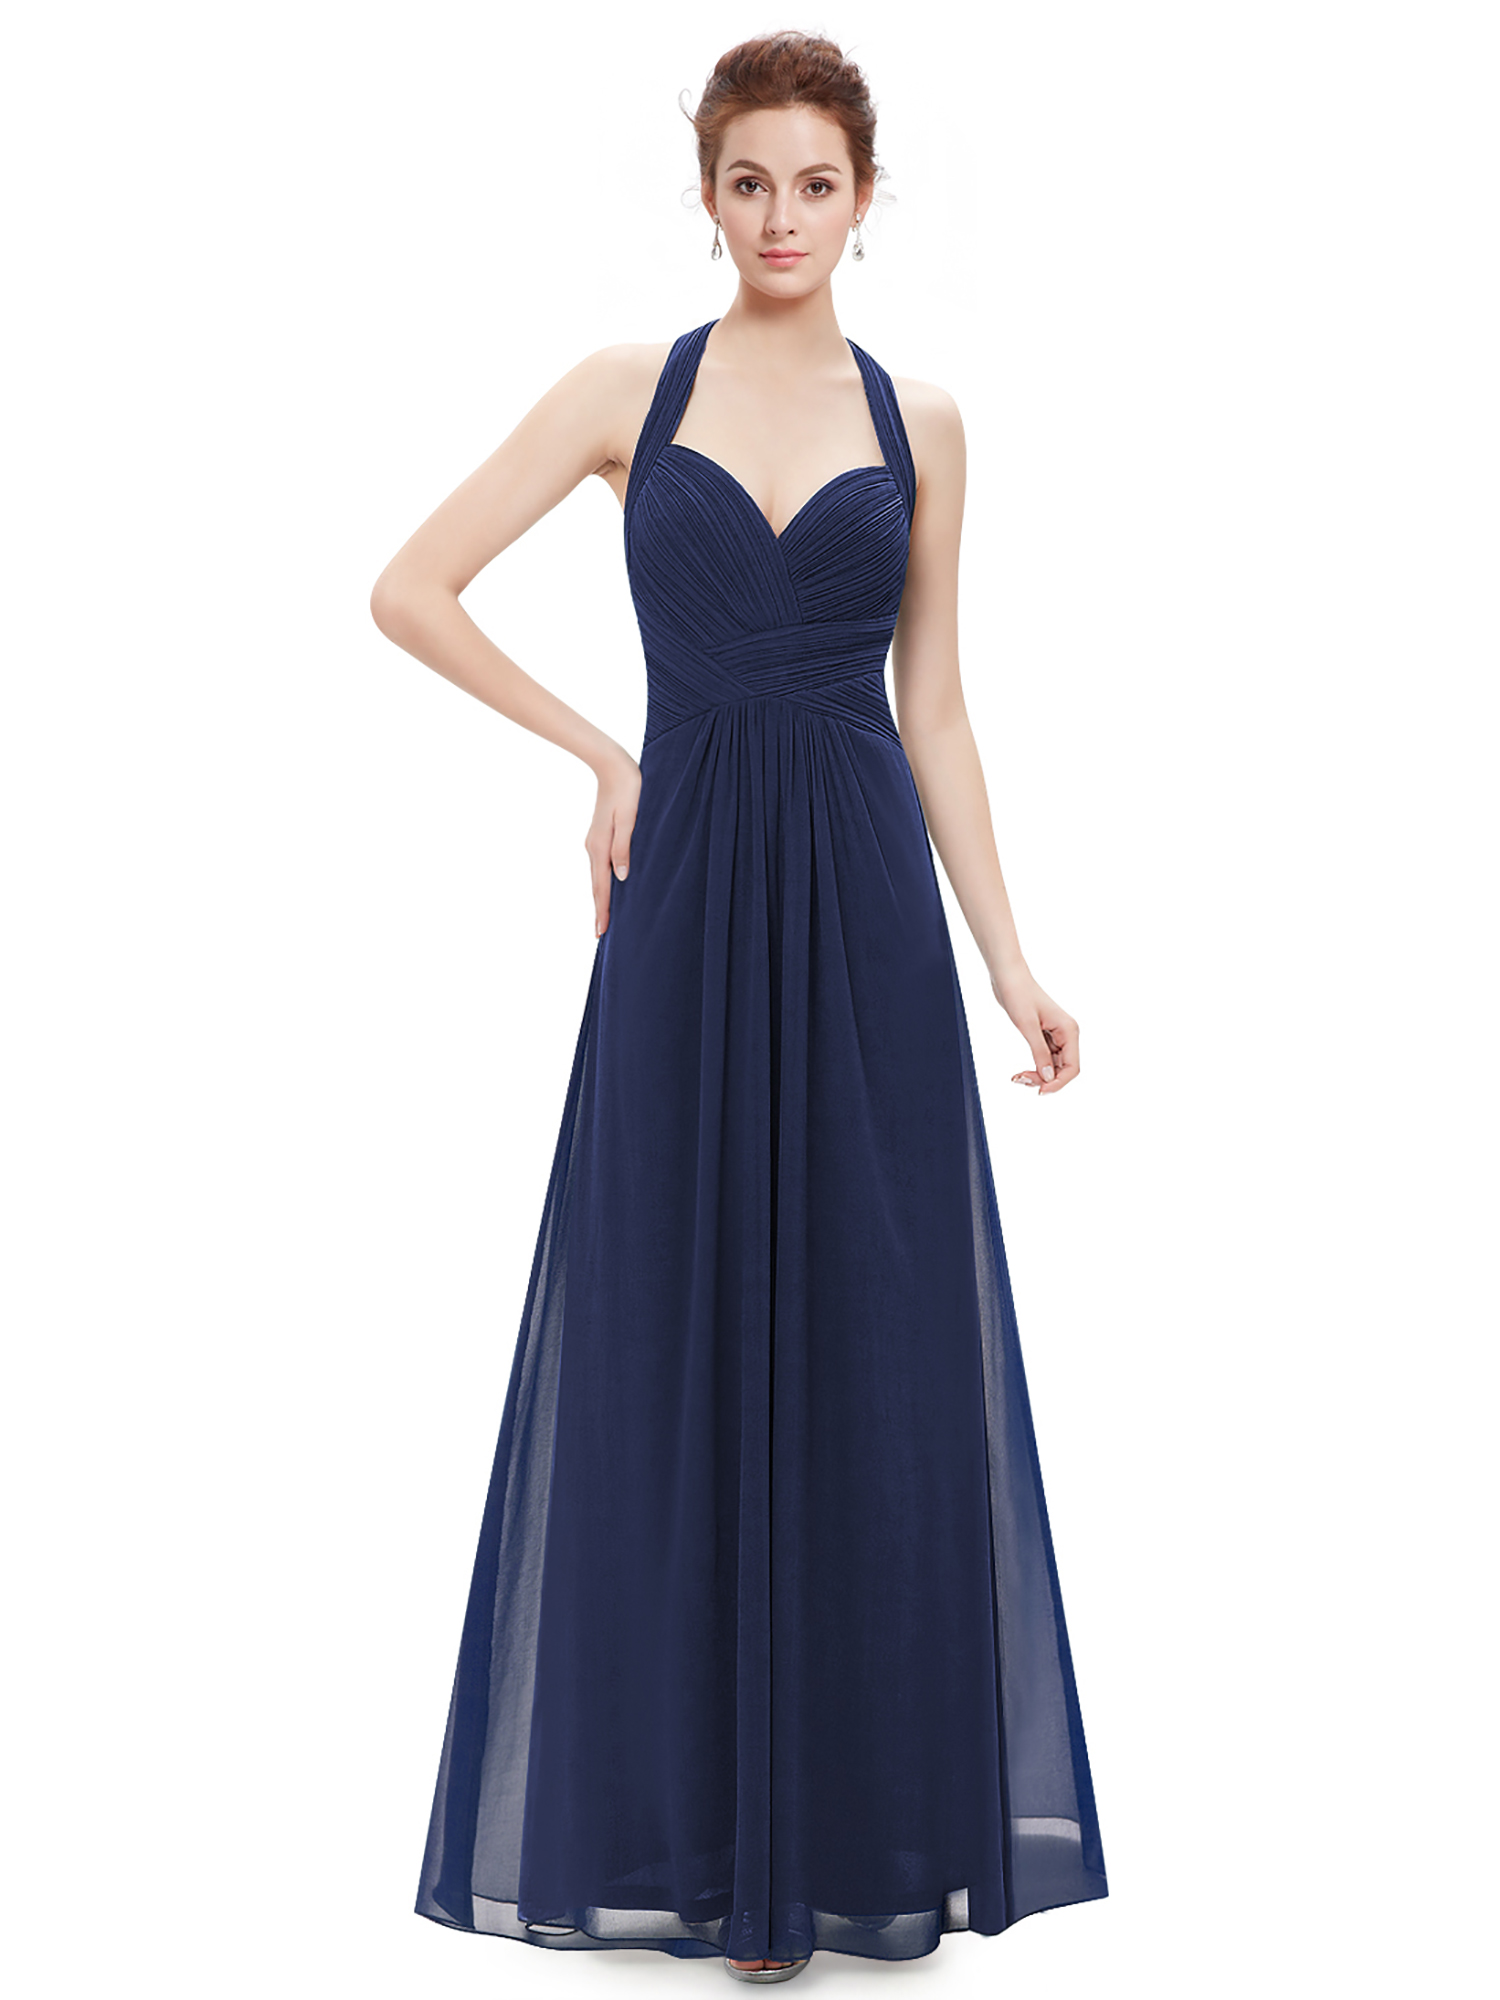 Women 39 s maxi halter bridesmaid dress evening wedding prom for Dresses for afternoon wedding